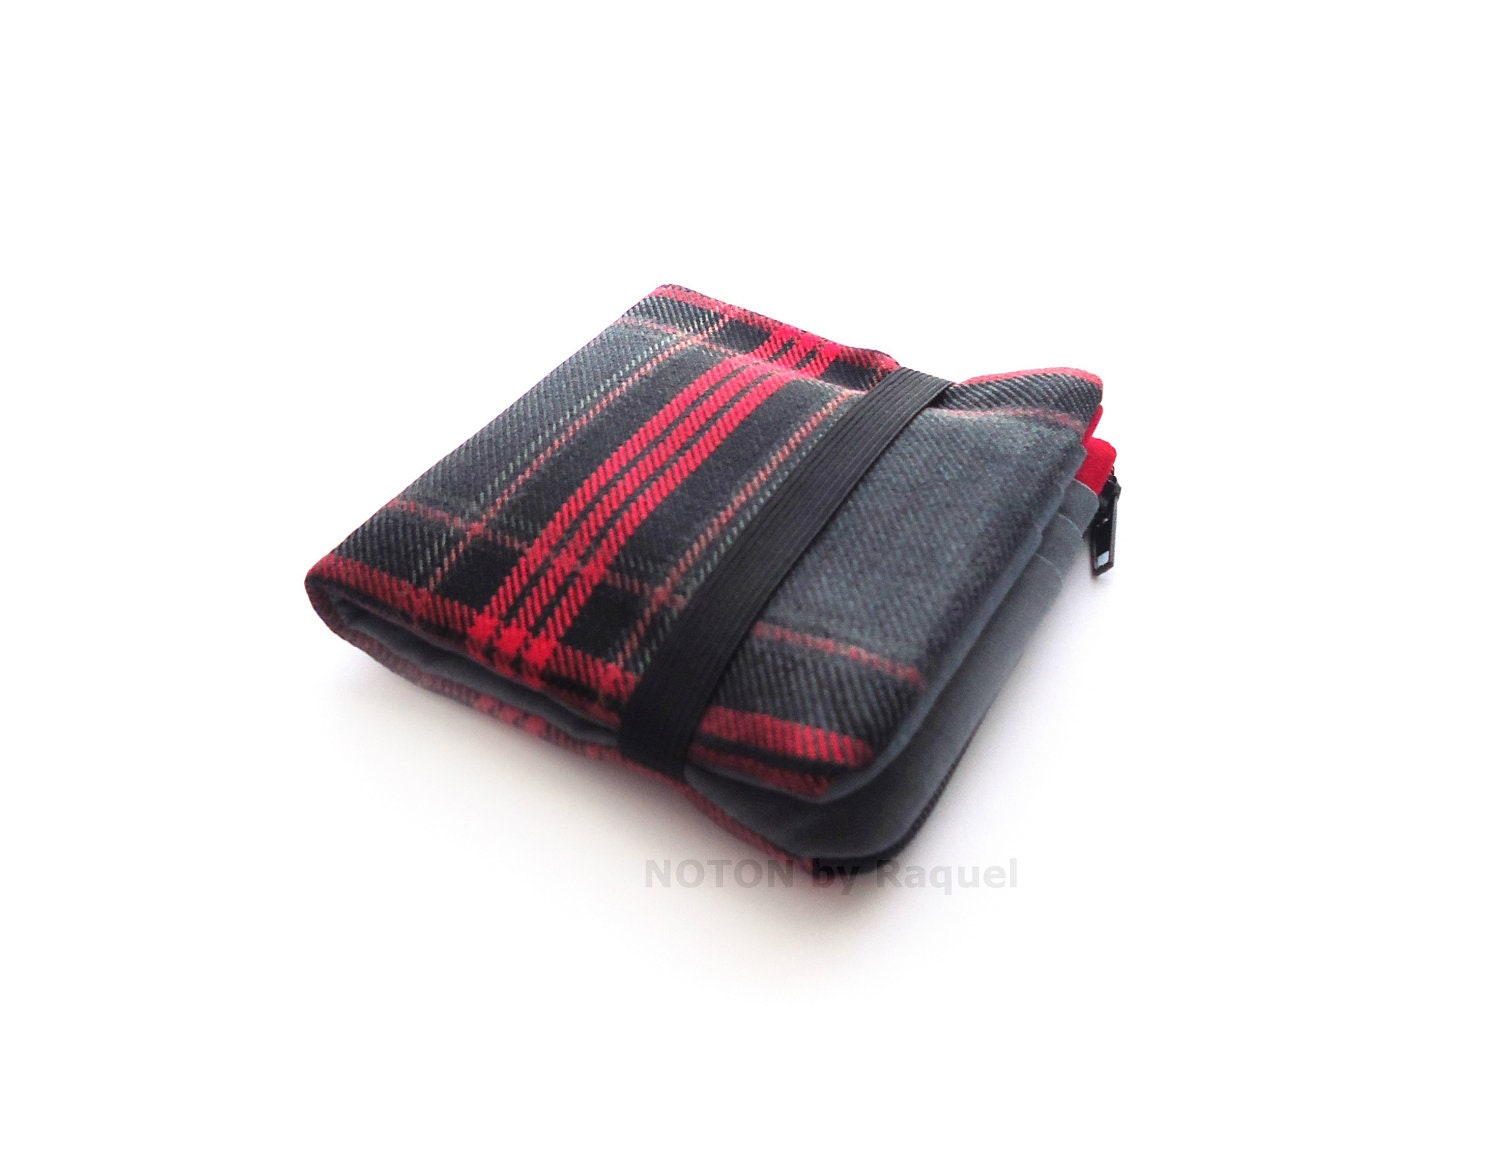 Men Billfold Wallet in Grey and Red Plaid Fabric - NOTONbyRaquel